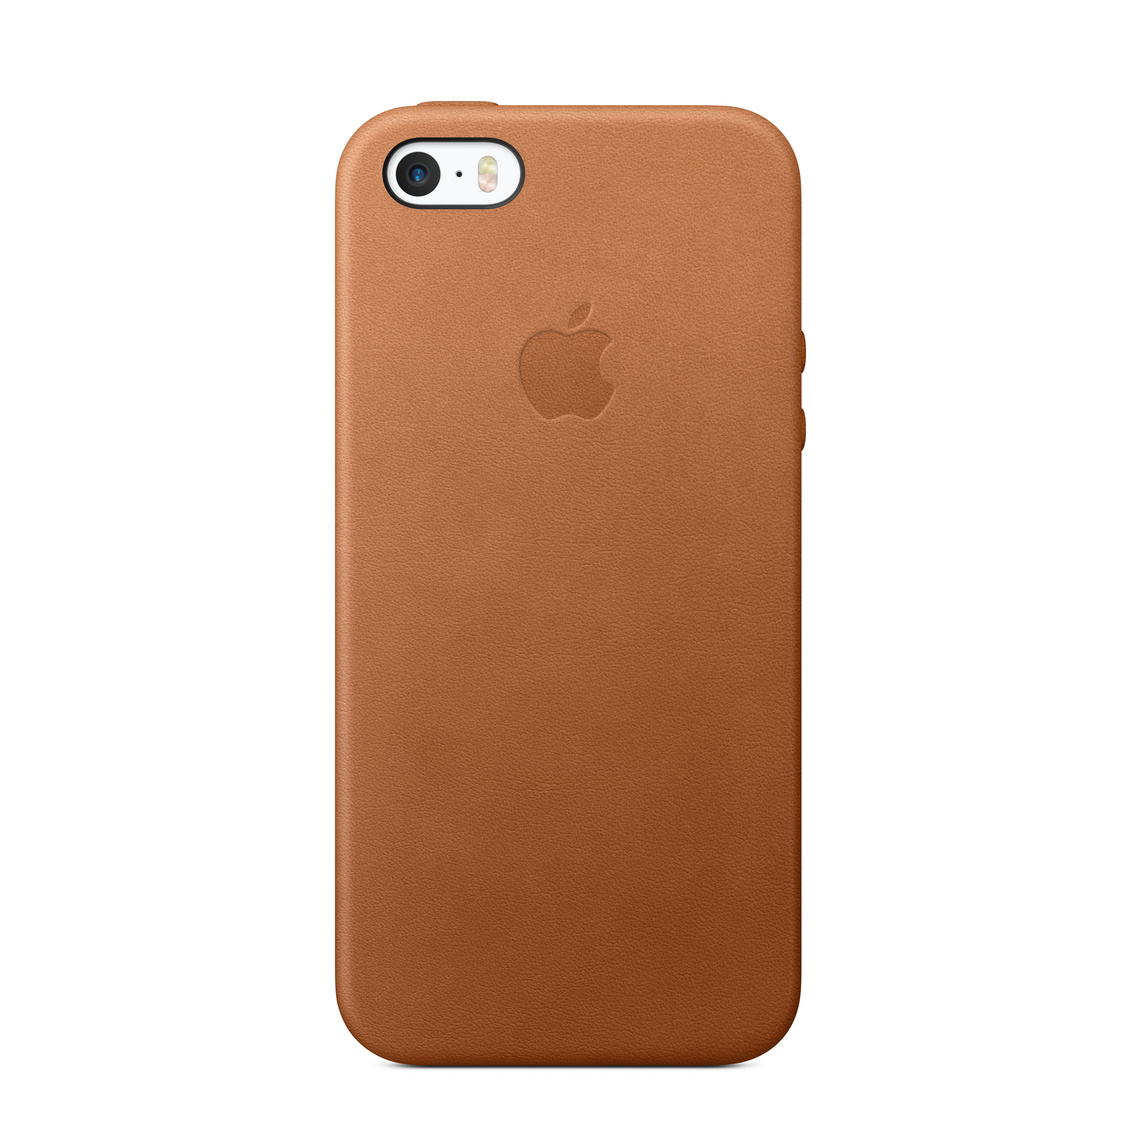 super popolare d91f1 eb7b6 iPhone SE Leather Case - Saddle Brown